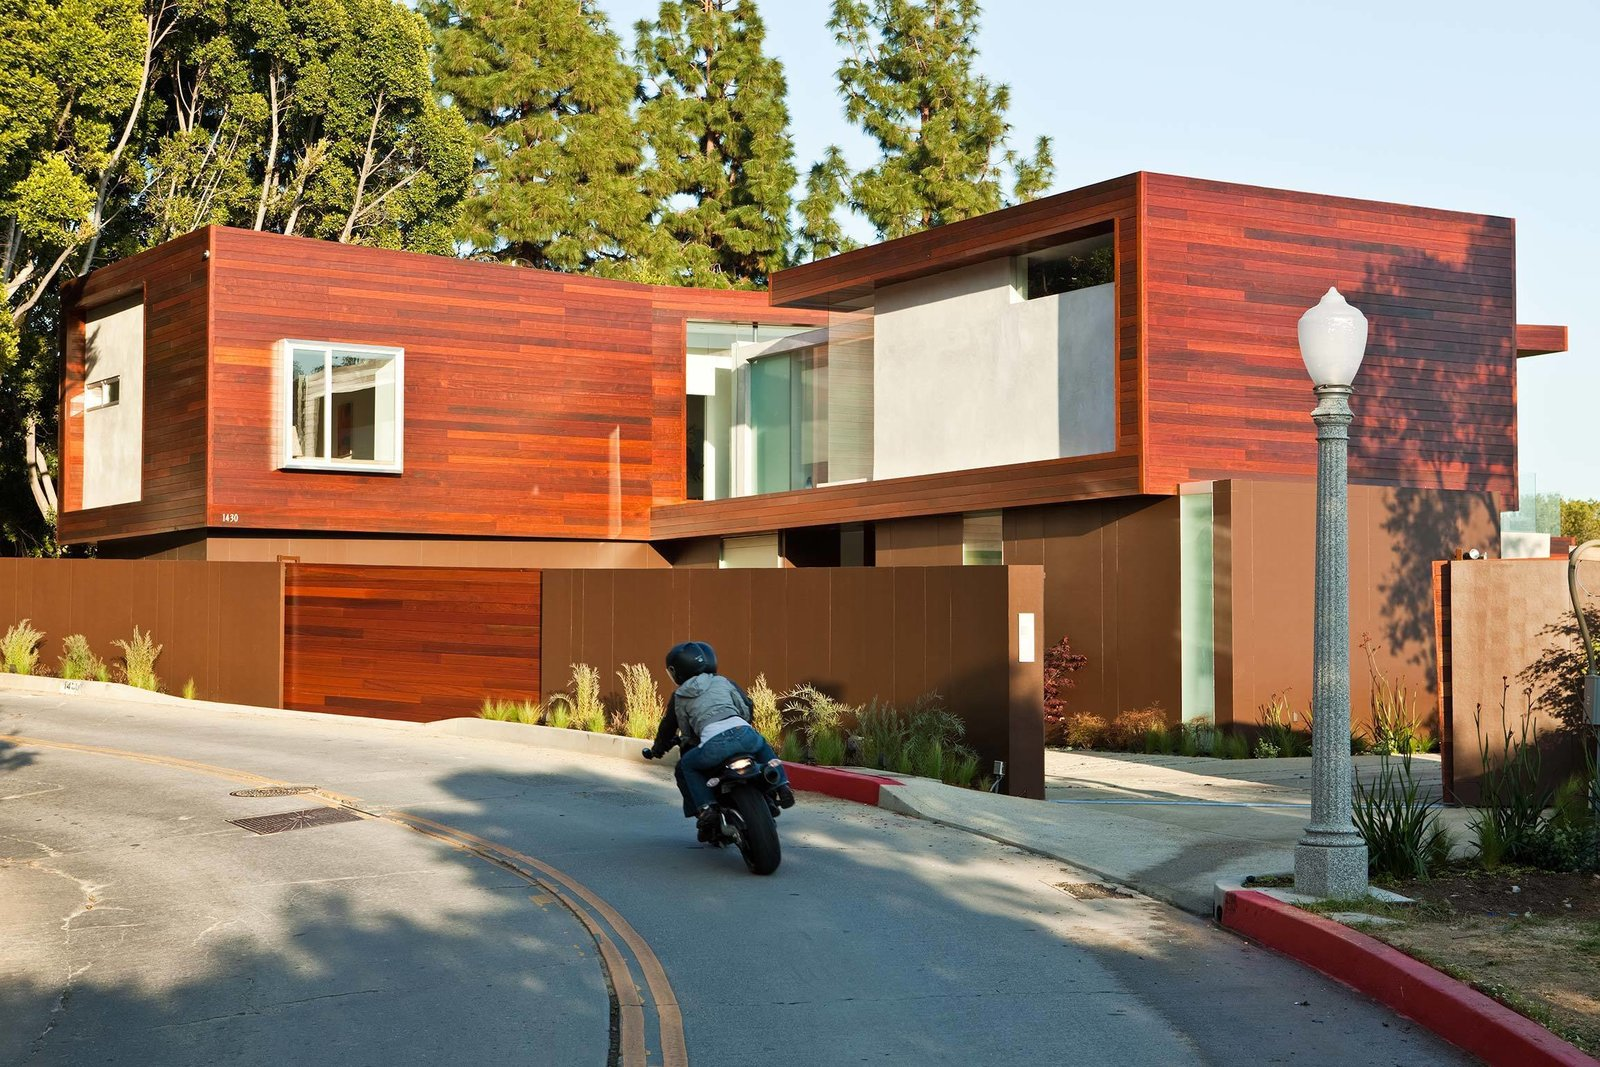 Sunset Plaza Residence by Assembledge+